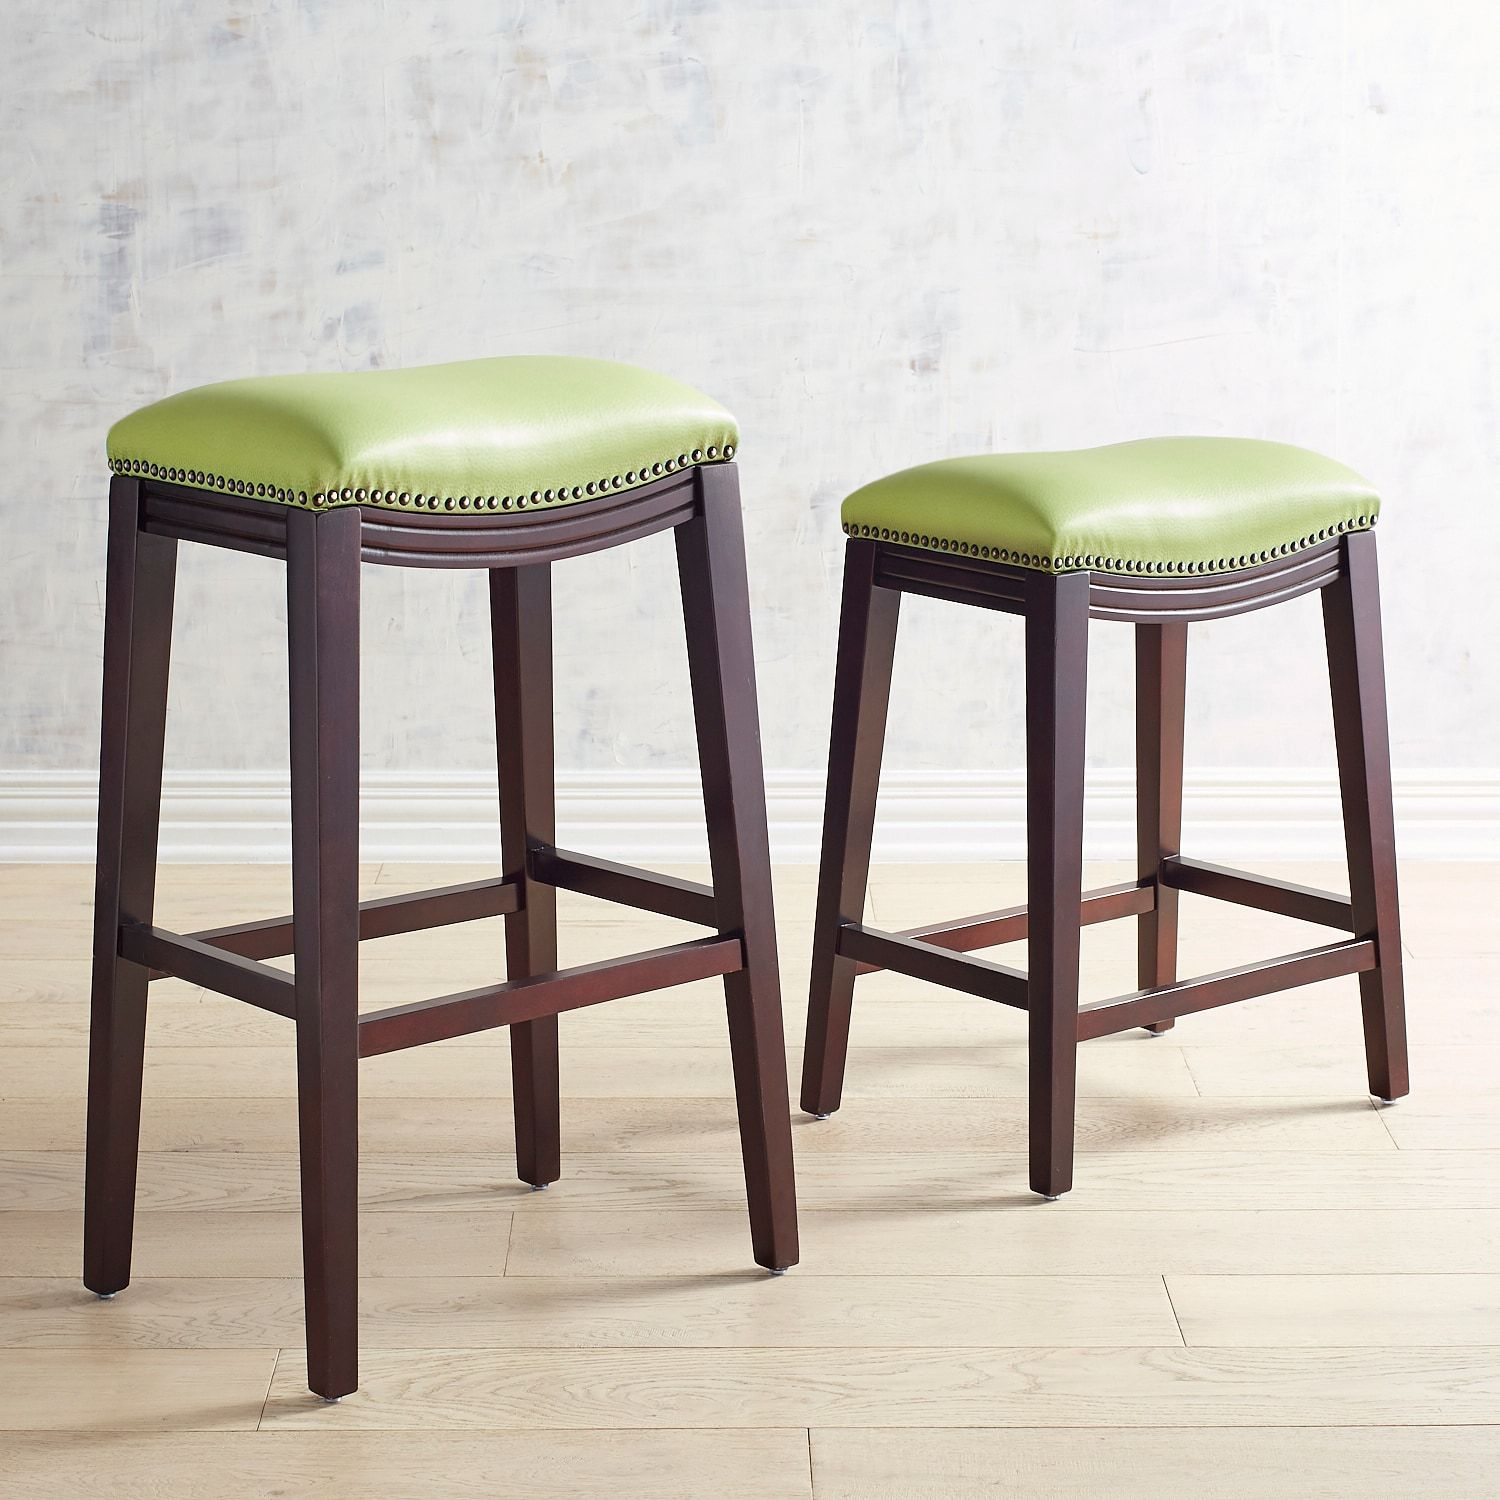 Halsted Fern Green Counter Bar Stool With Espresso Legs